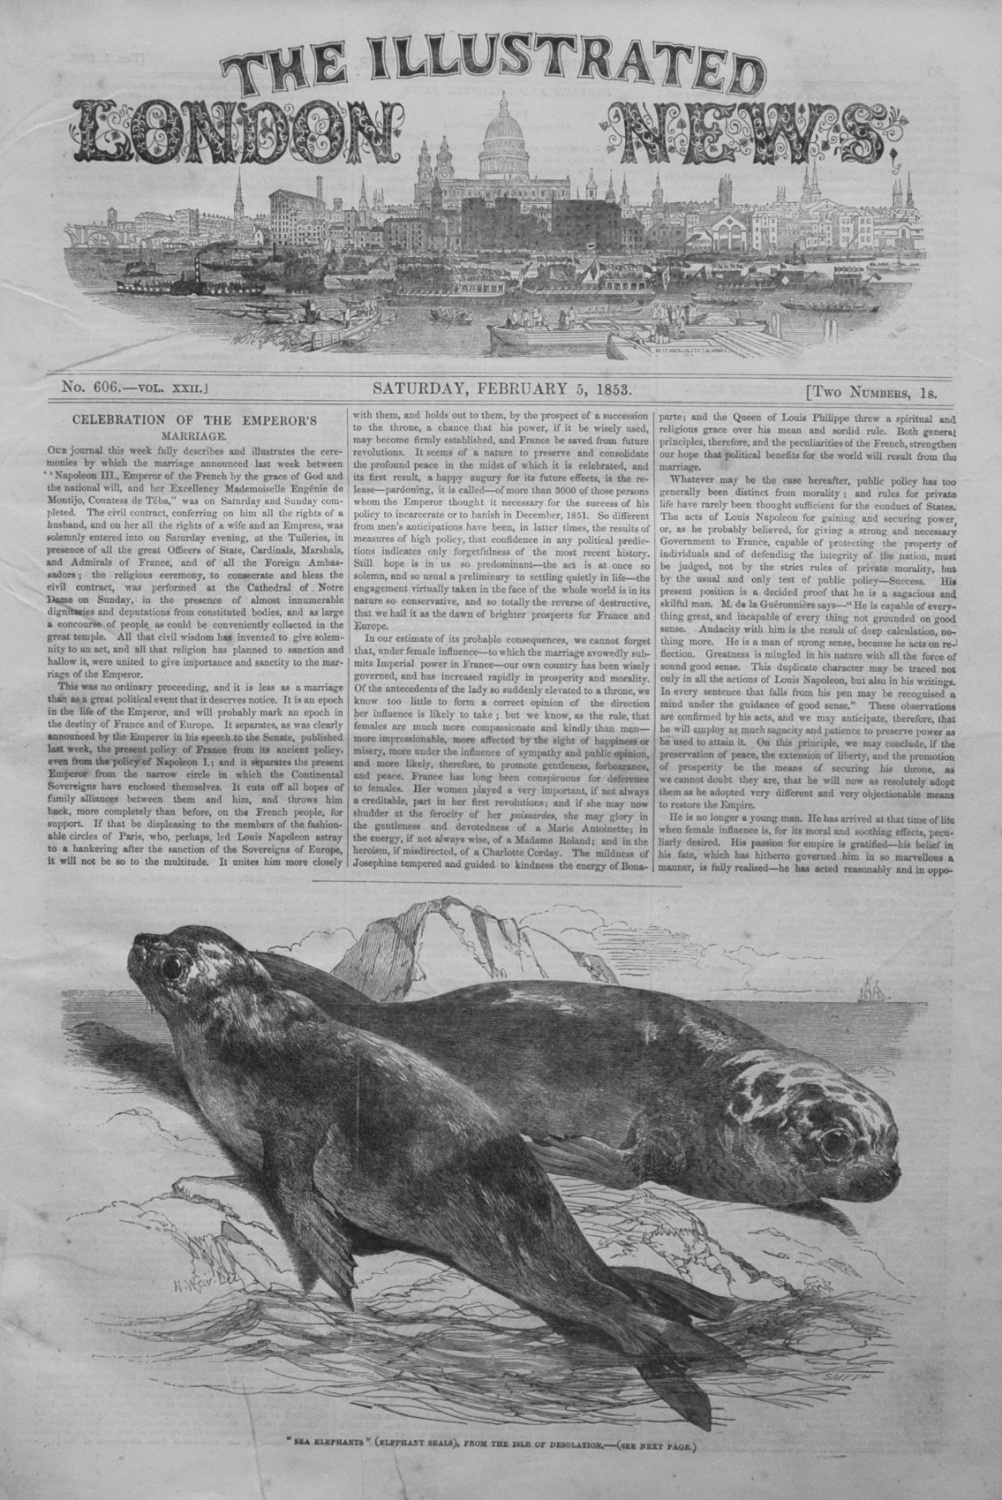 Illustrated London News February 5th 1853.